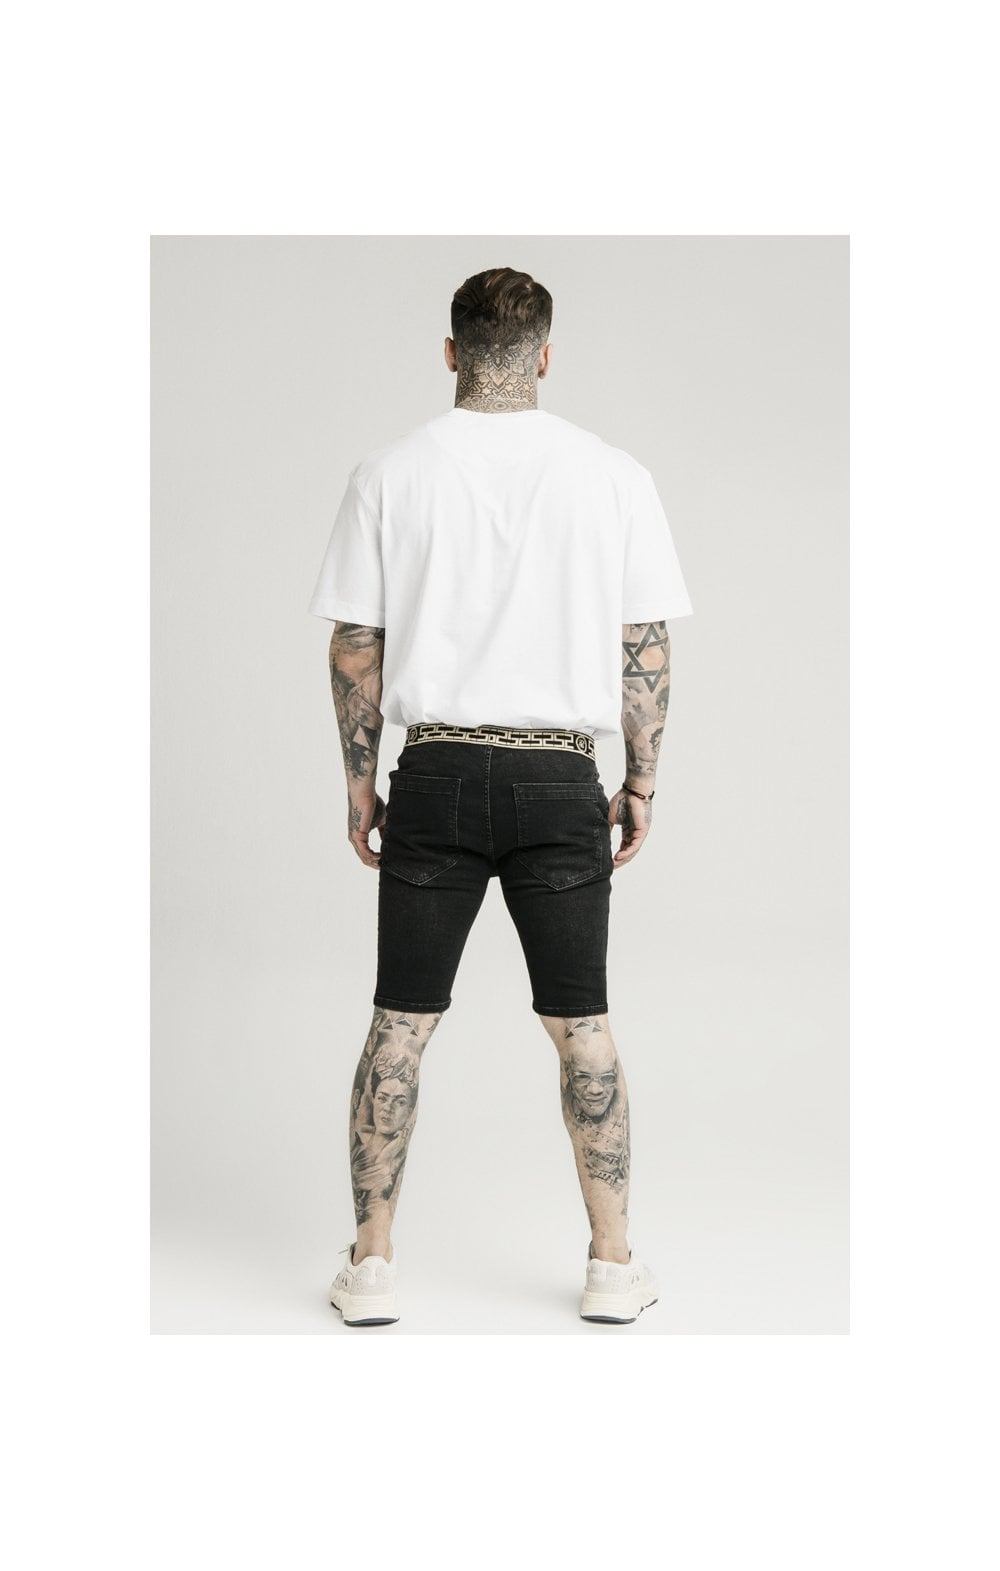 SikSilk Elasticated Waist Distressed Denim Shorts – Black (5)